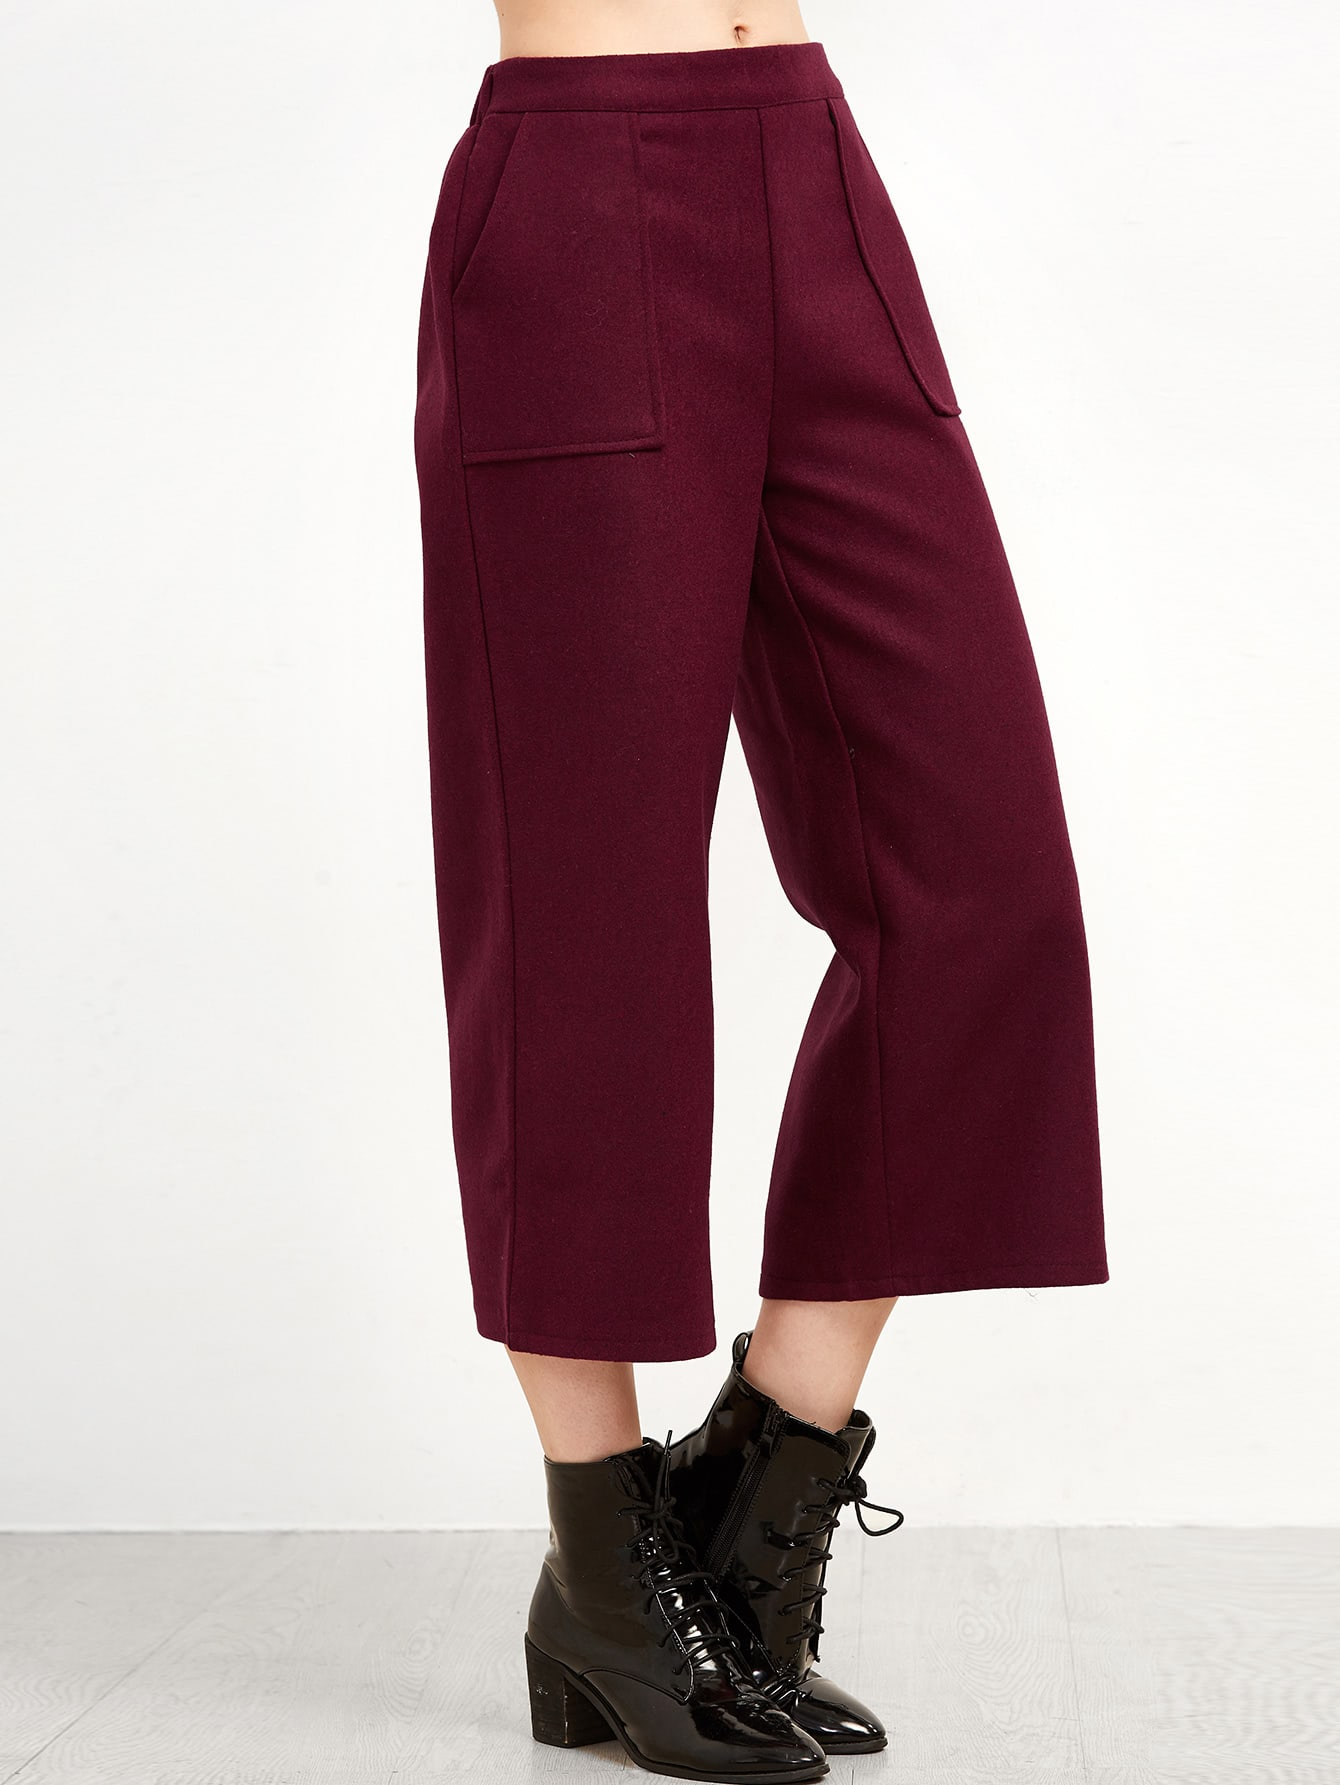 Wide Leg Dual Pockets Pants pants161004101